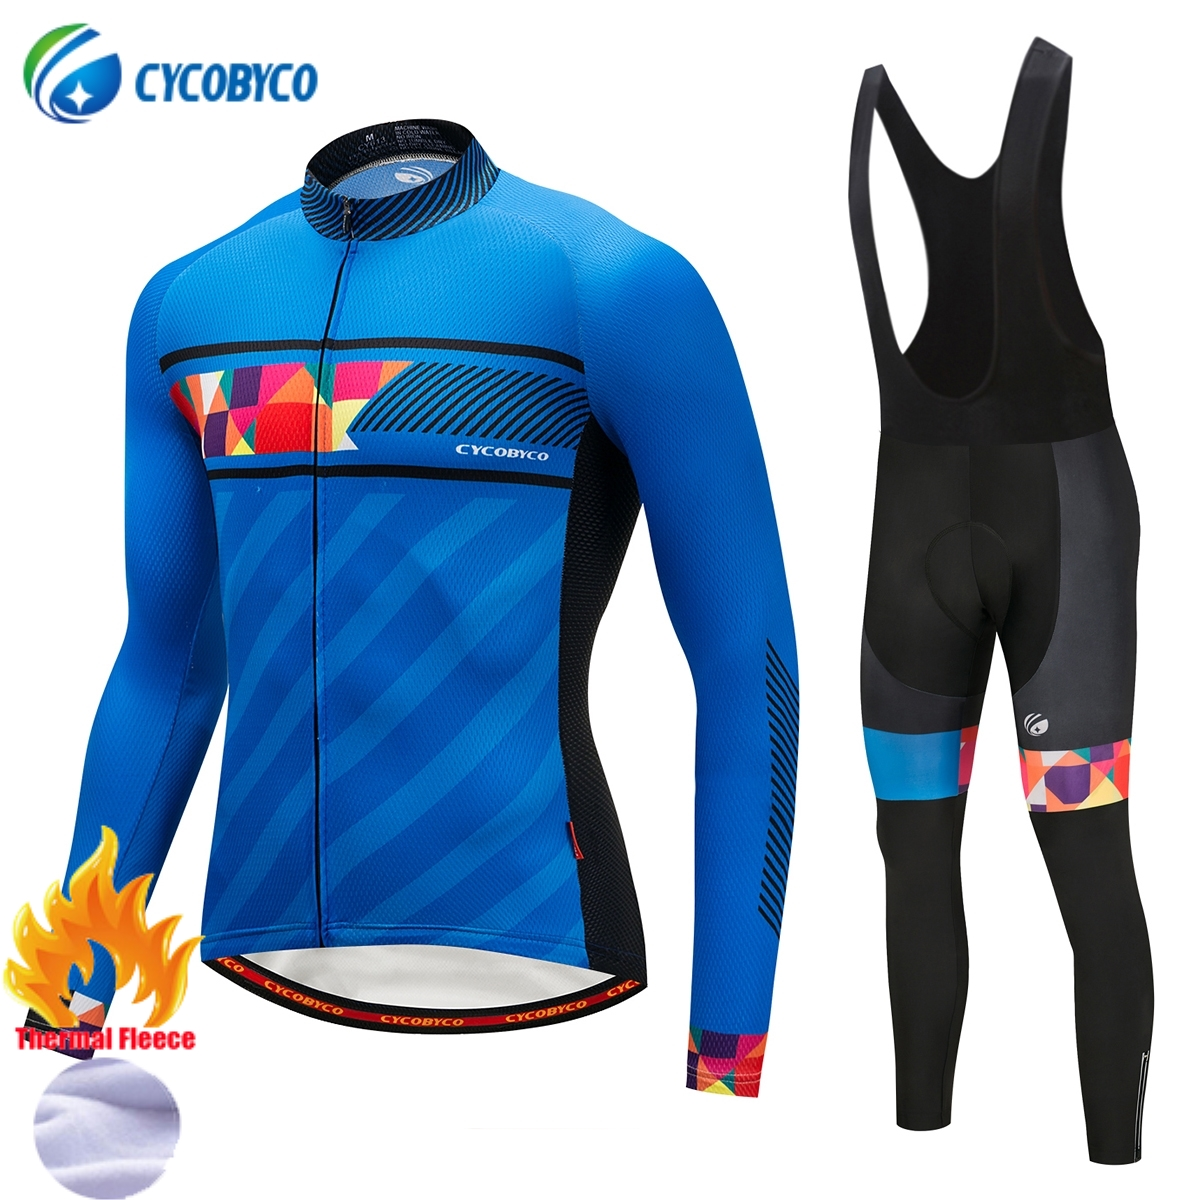 Cycobyco Winter Thermal Fleece Cycling Clothing Bike Clothes Wear Bicycle Jersey Set Long Sleeve Maillot Ropa Ciclismo Invierno teleyi 2017 women winter thermal fleece cycling clothing pro bike clothes wear mtb bicycle jersey set maillot ropa ciclismo sets